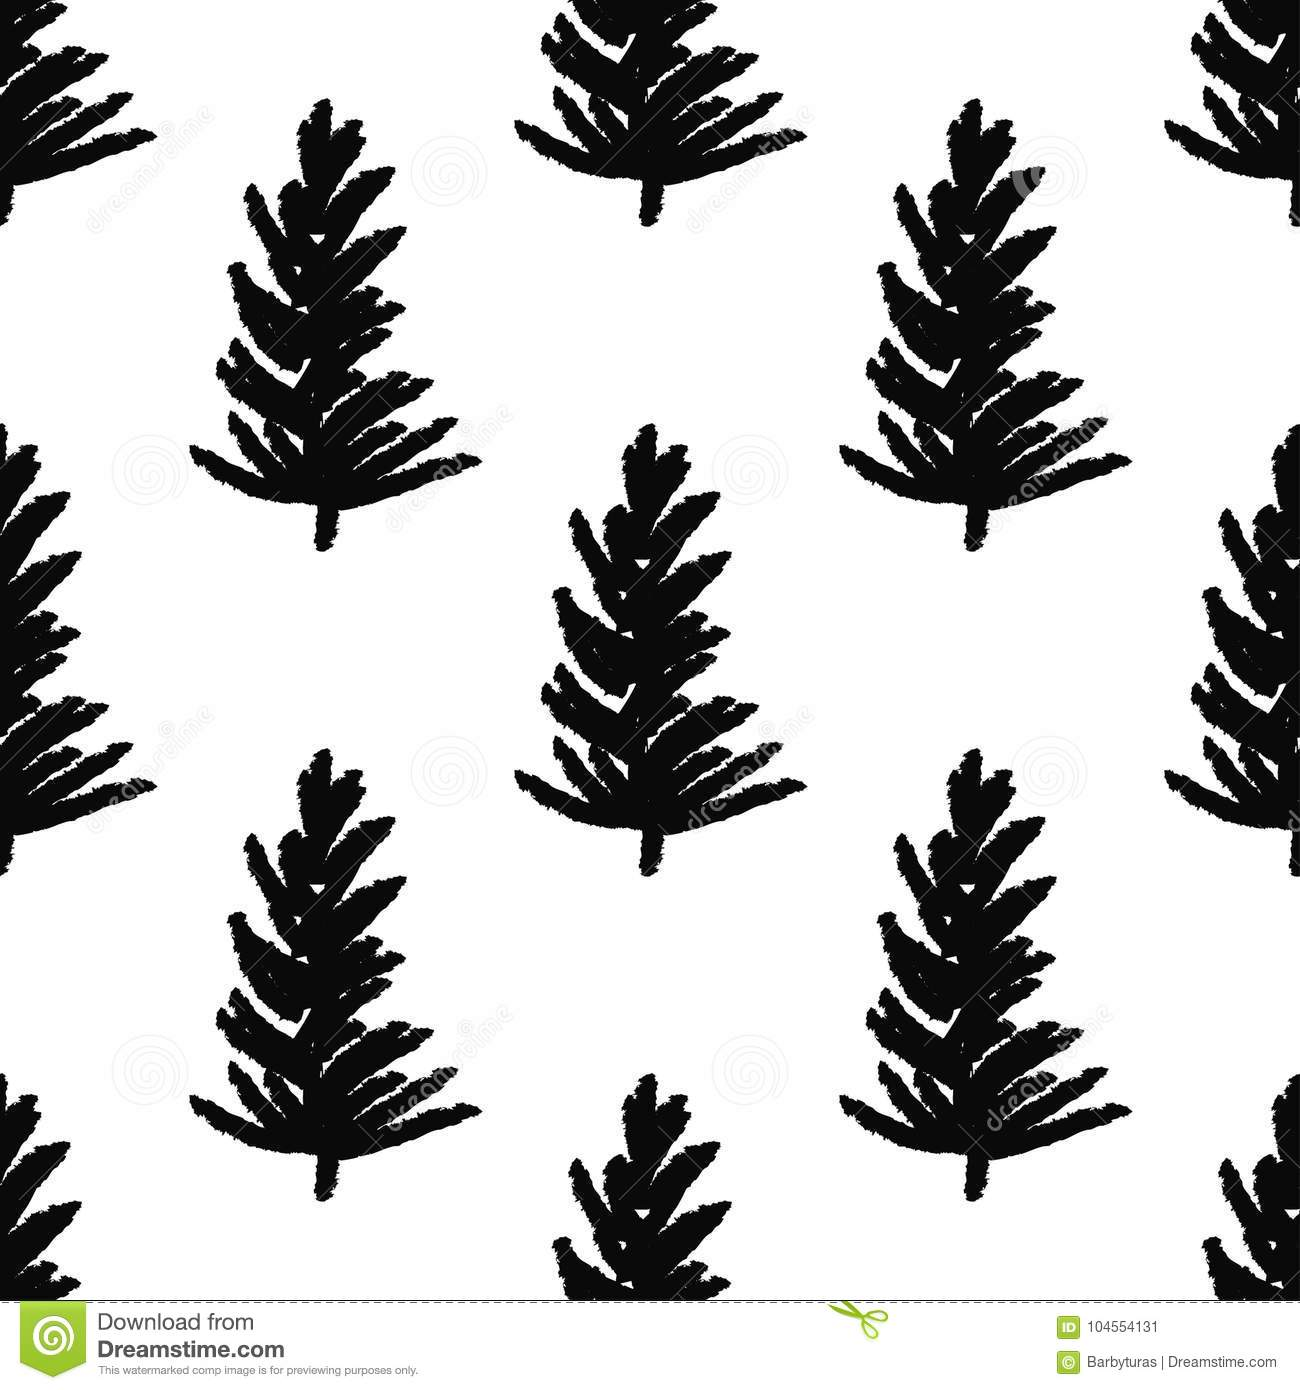 Abstract Art Background Christmas Tree Seamless Pattern Illustration For Wrapping Paper Of